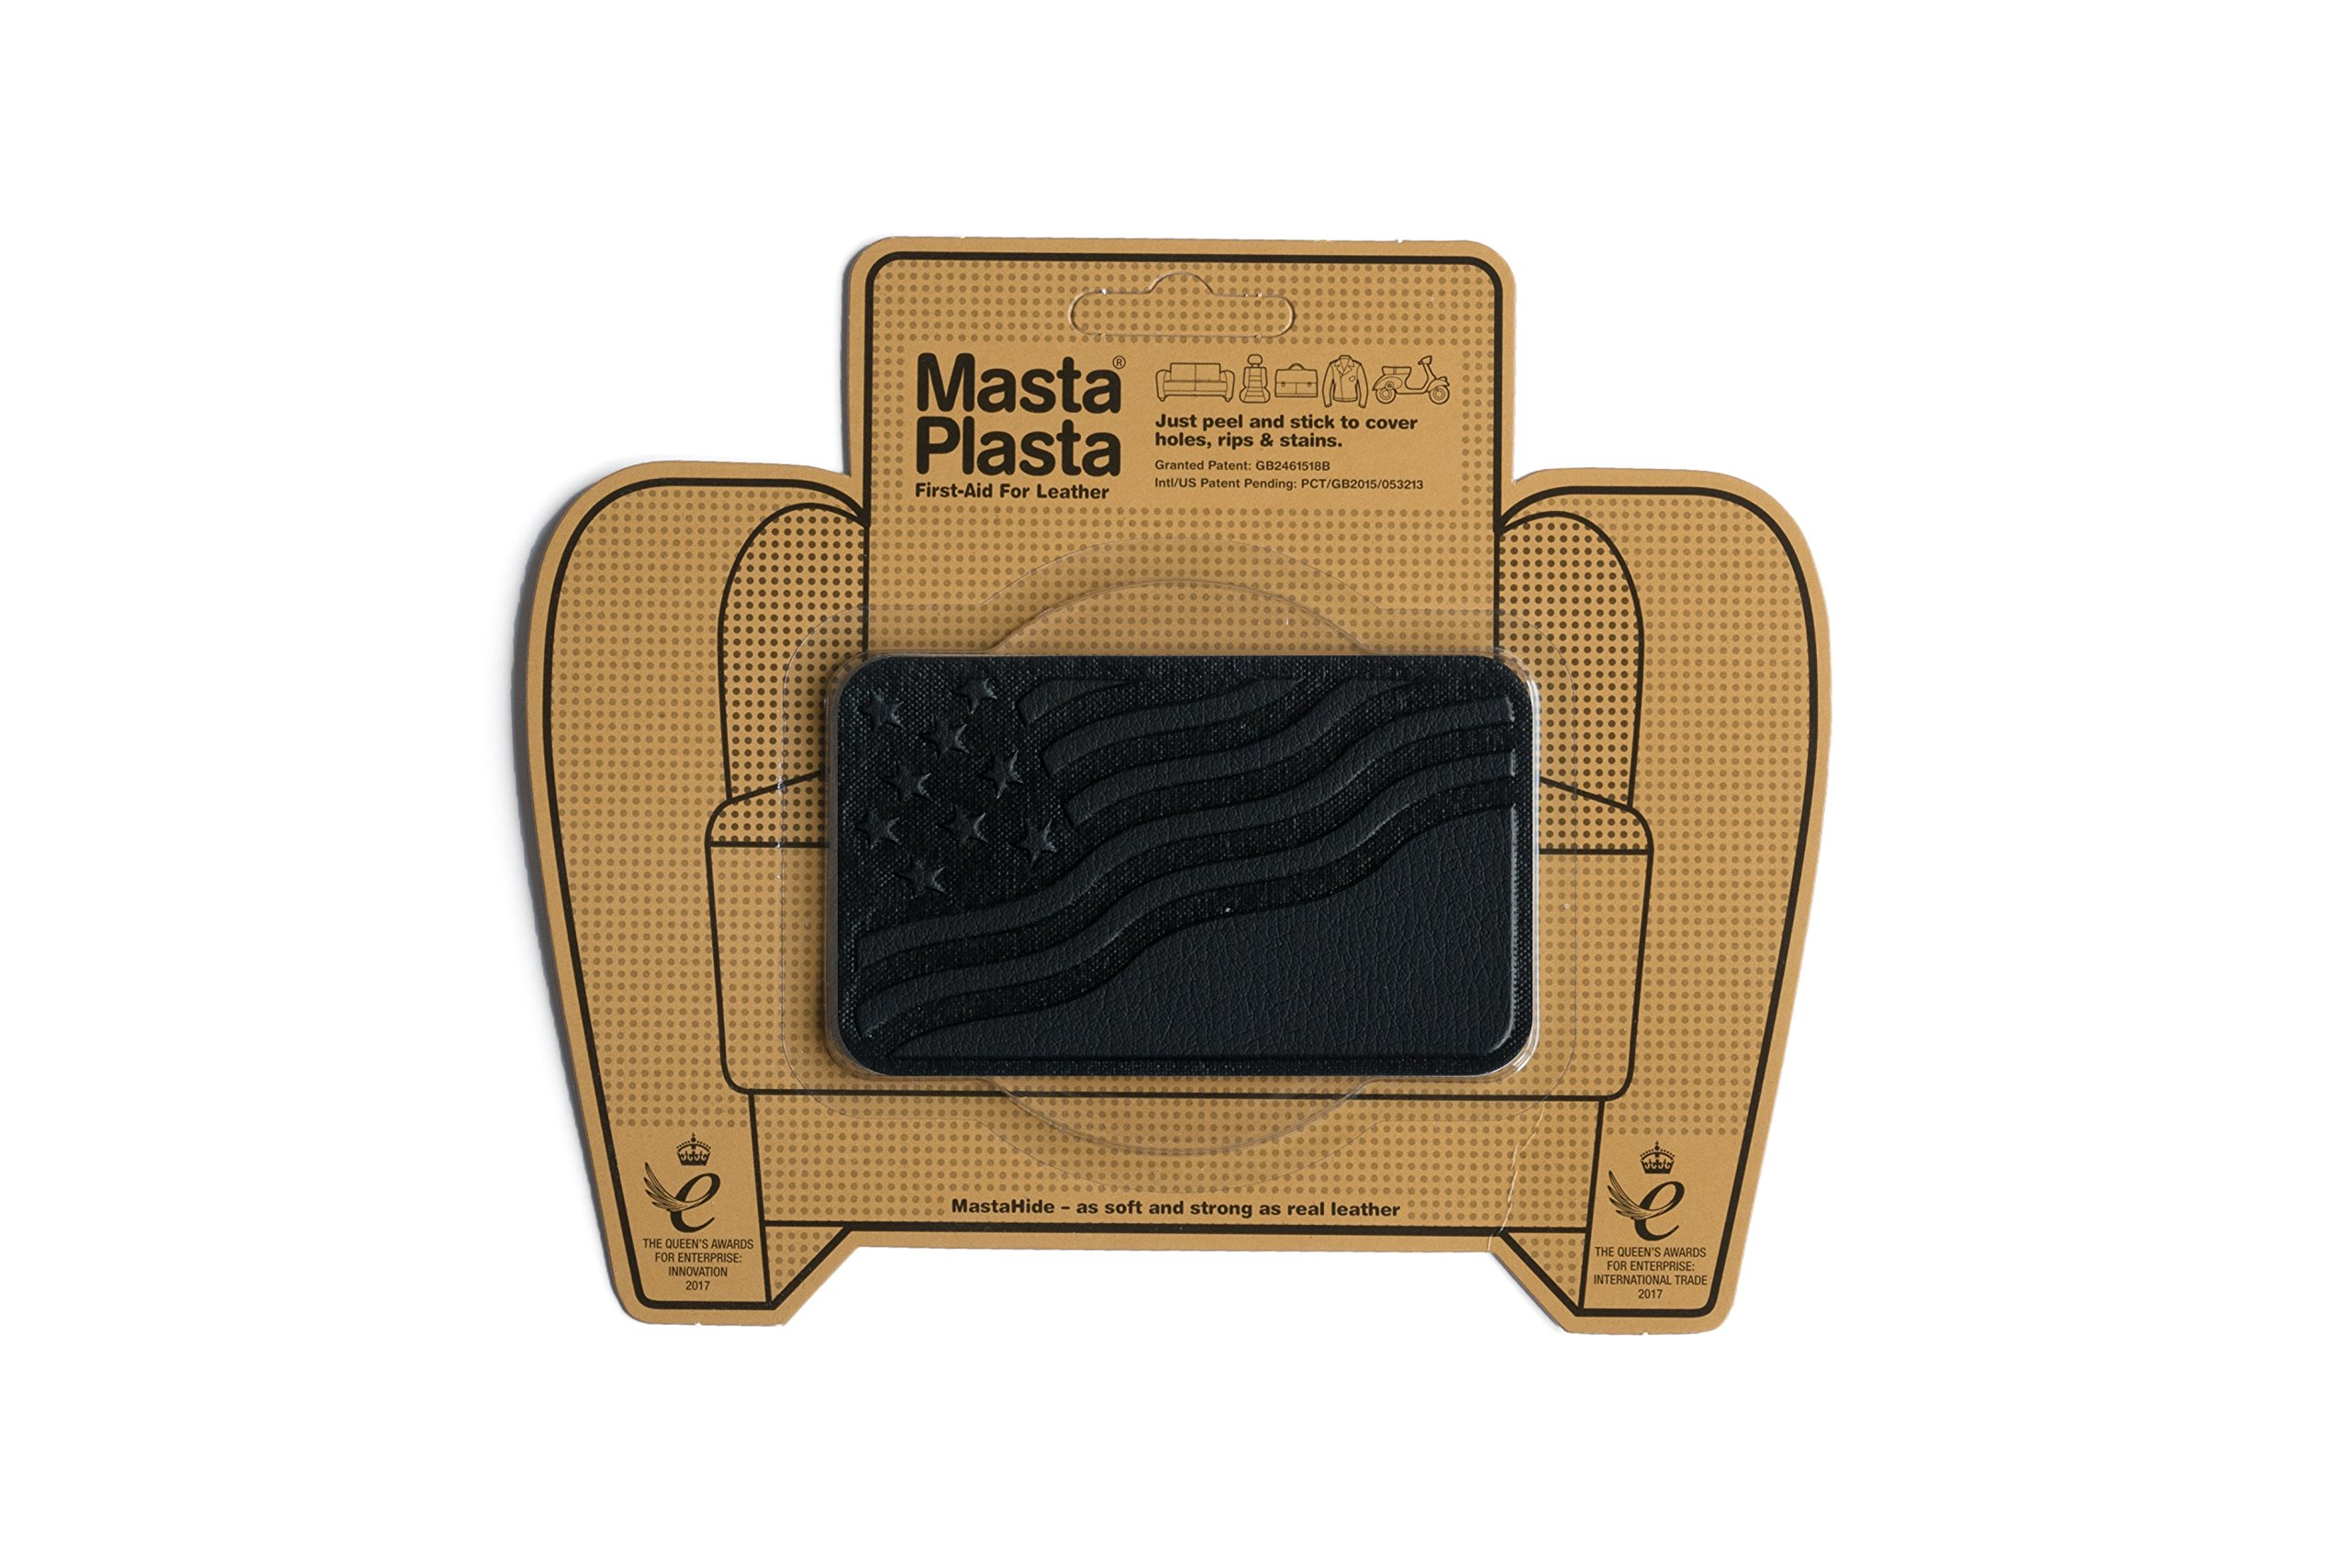 MastaPlasta, Leather Repair Patch, First-aid for Sofas, Car Seats, Handbags, Jackets, etc. Black Color, Flag 4-inch by 2.4-inch, Designs Vary